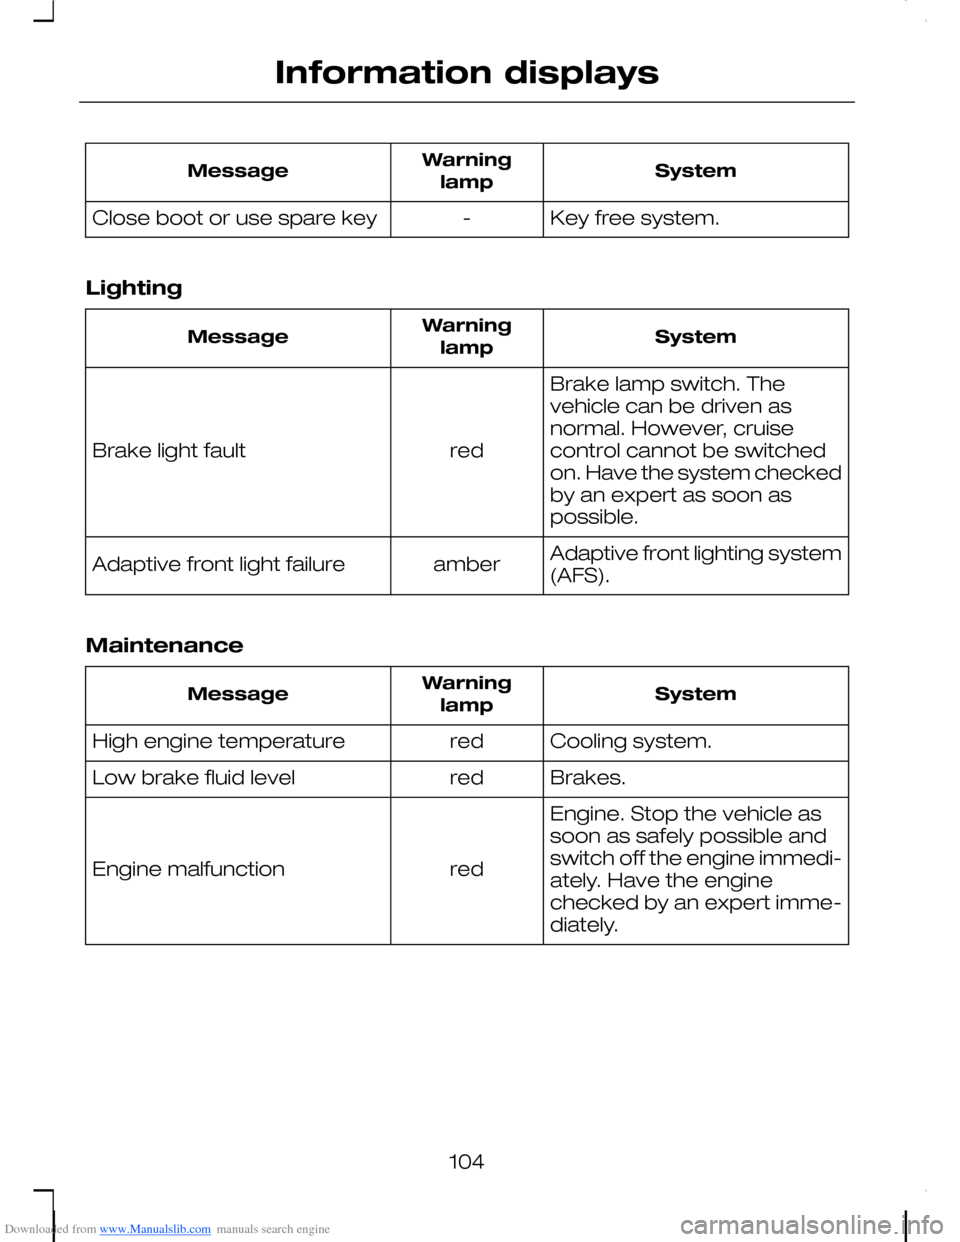 Ford c max 2008 1 g owners manual page 106